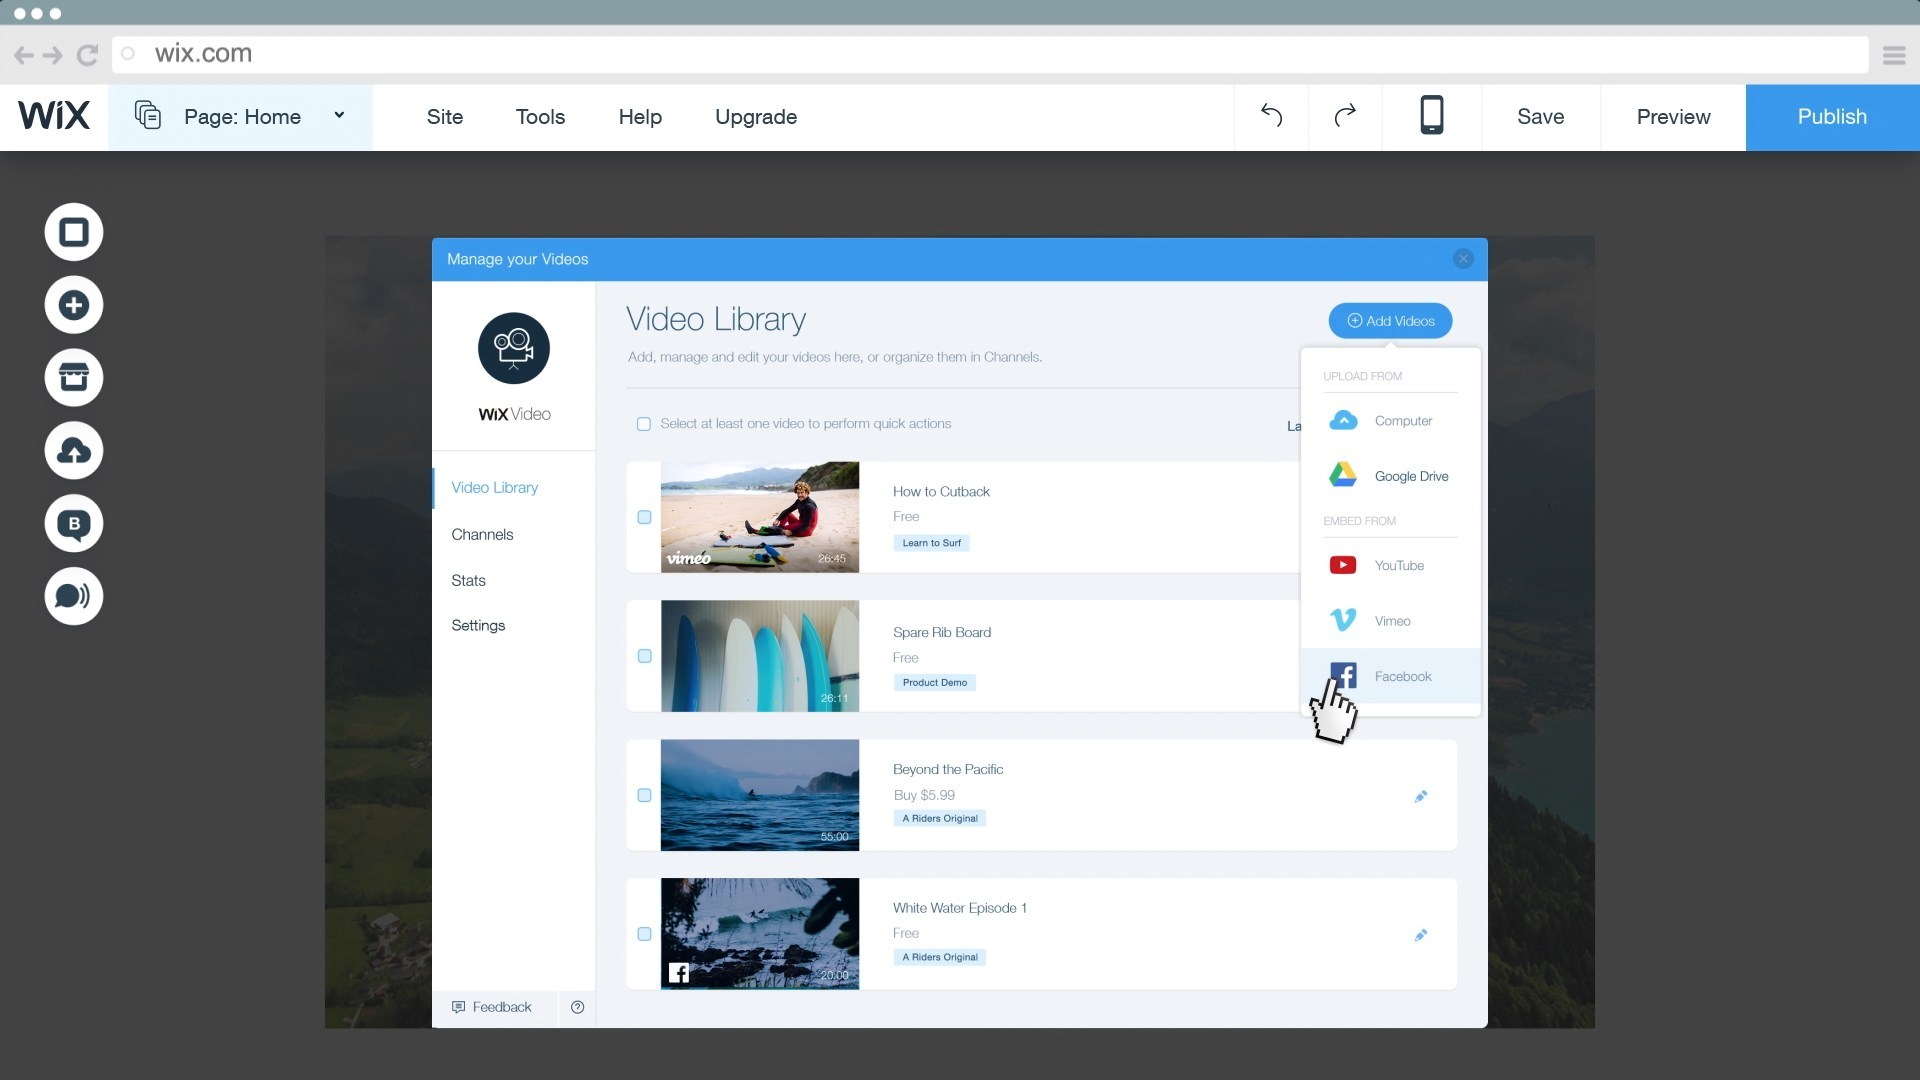 Launch of Wix Video Gives Users Unparalleled Video Capabilities